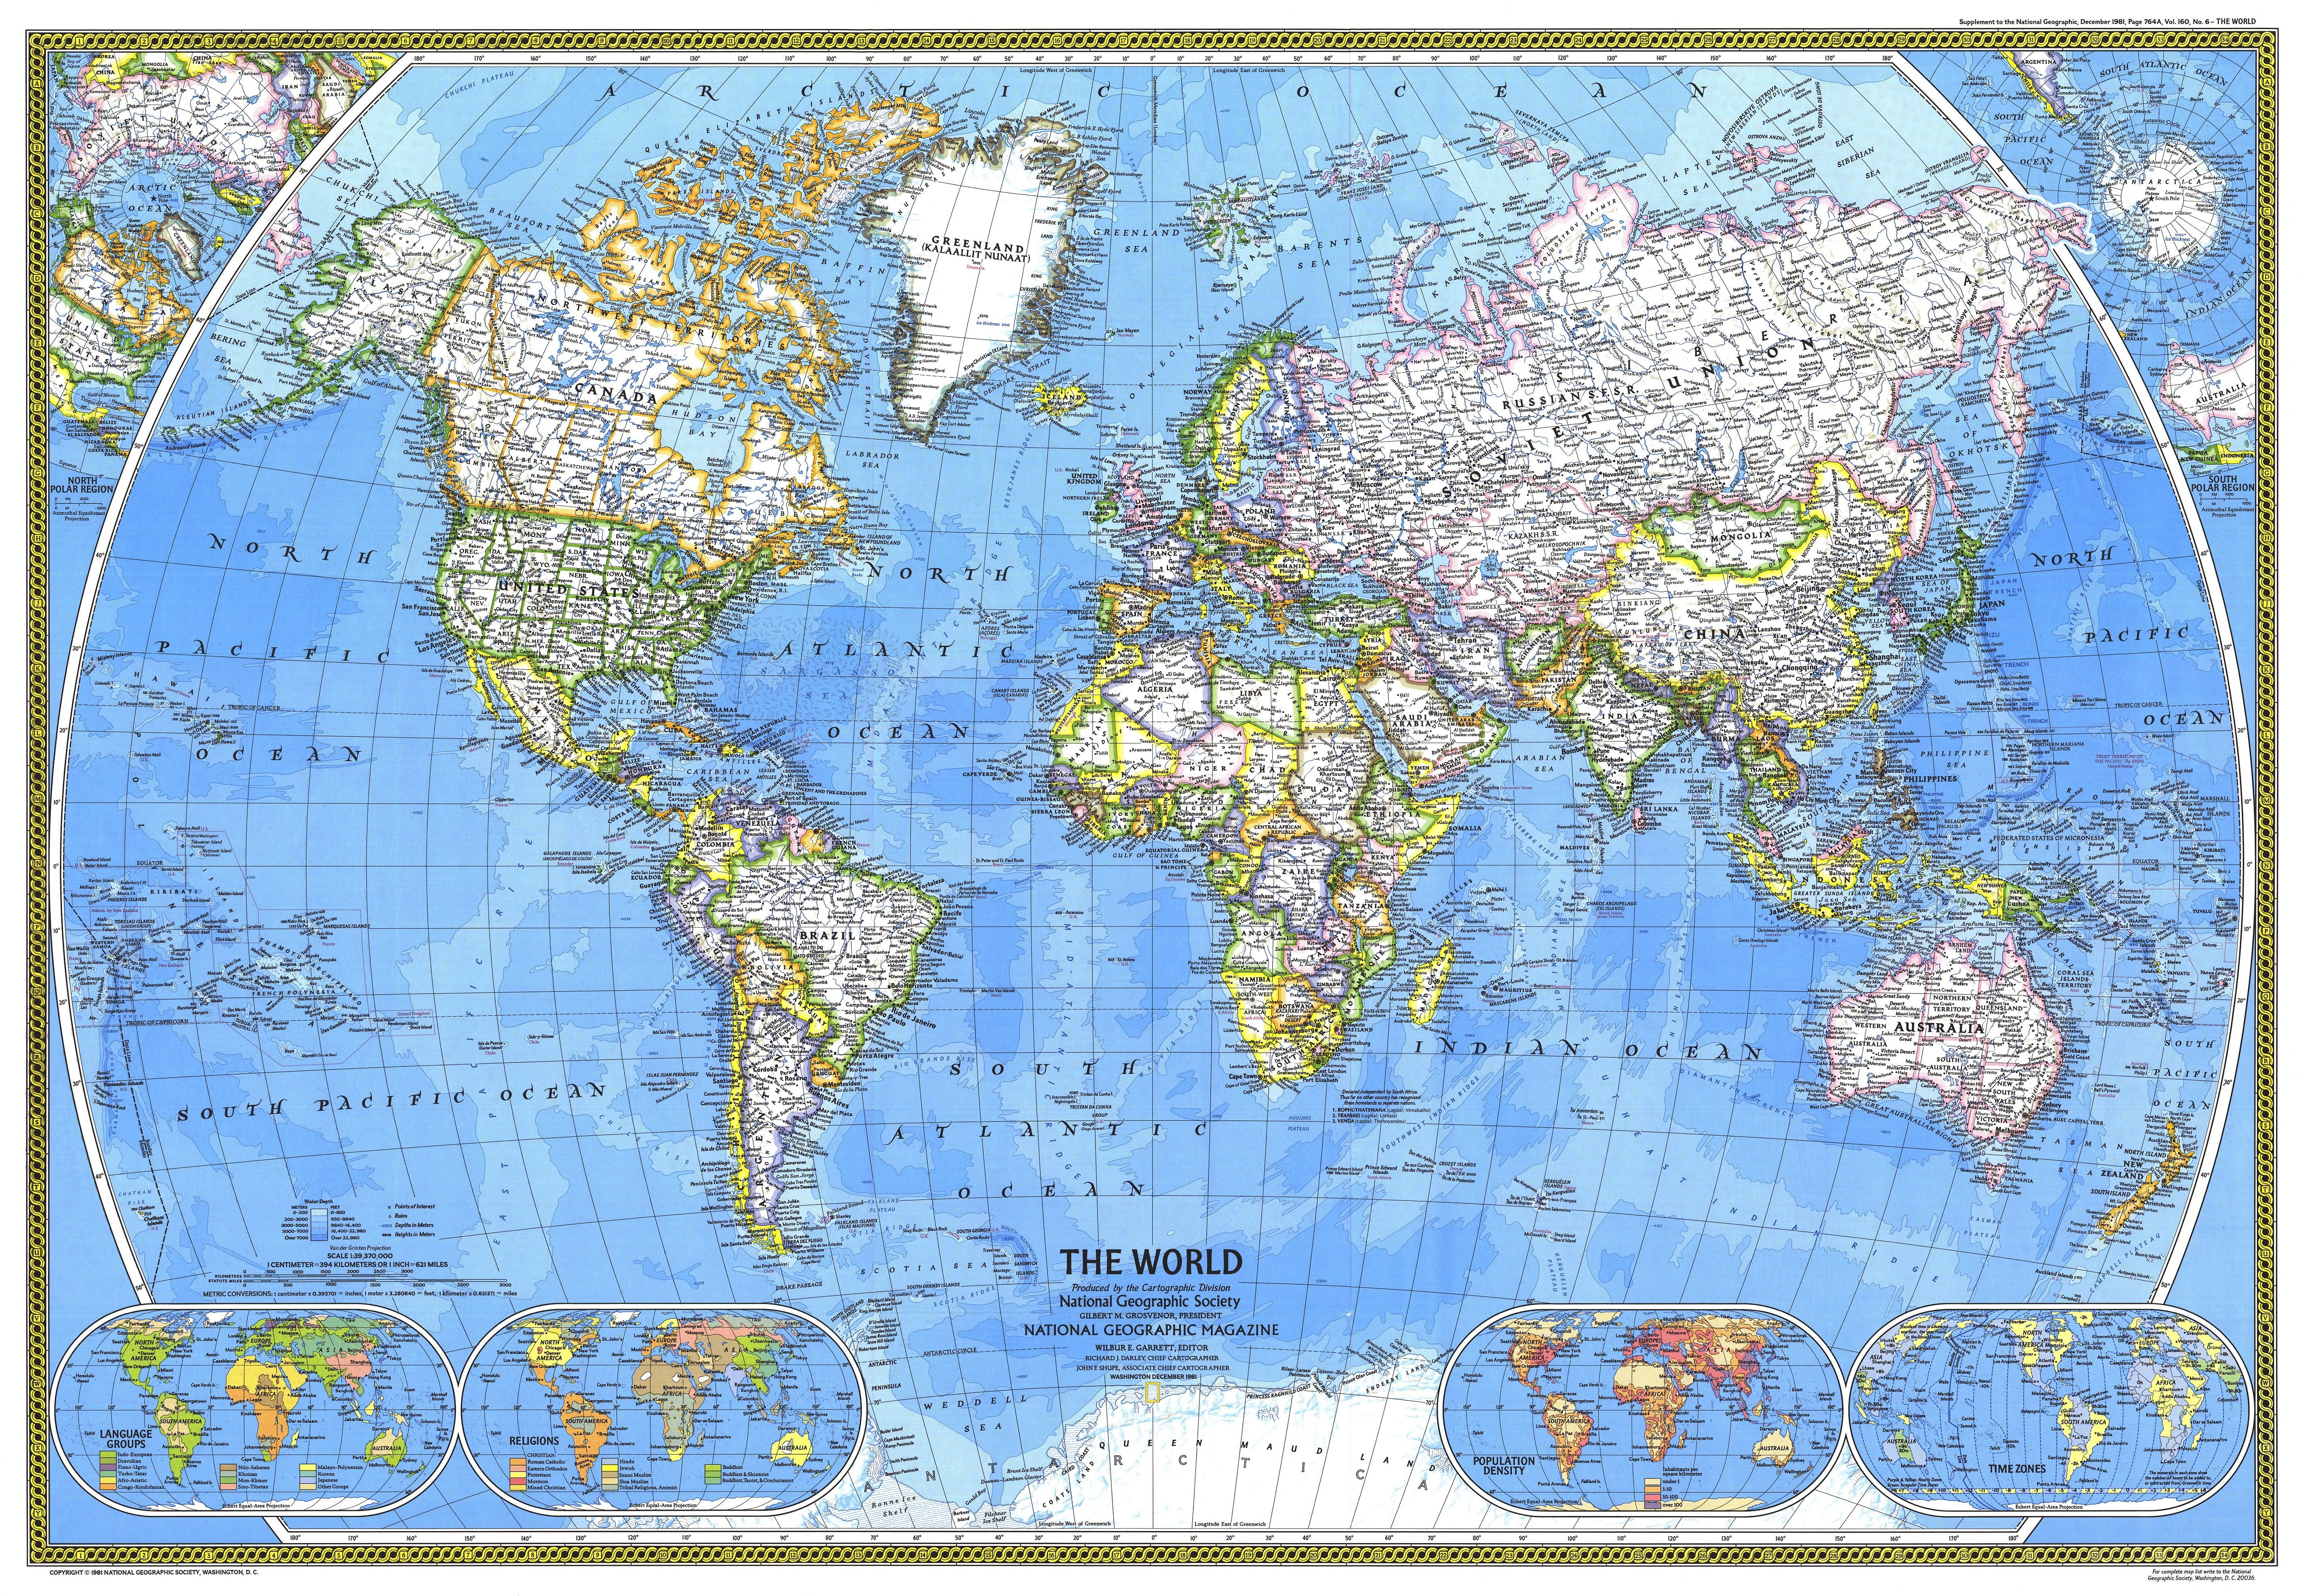 Ngs 1981 World Map